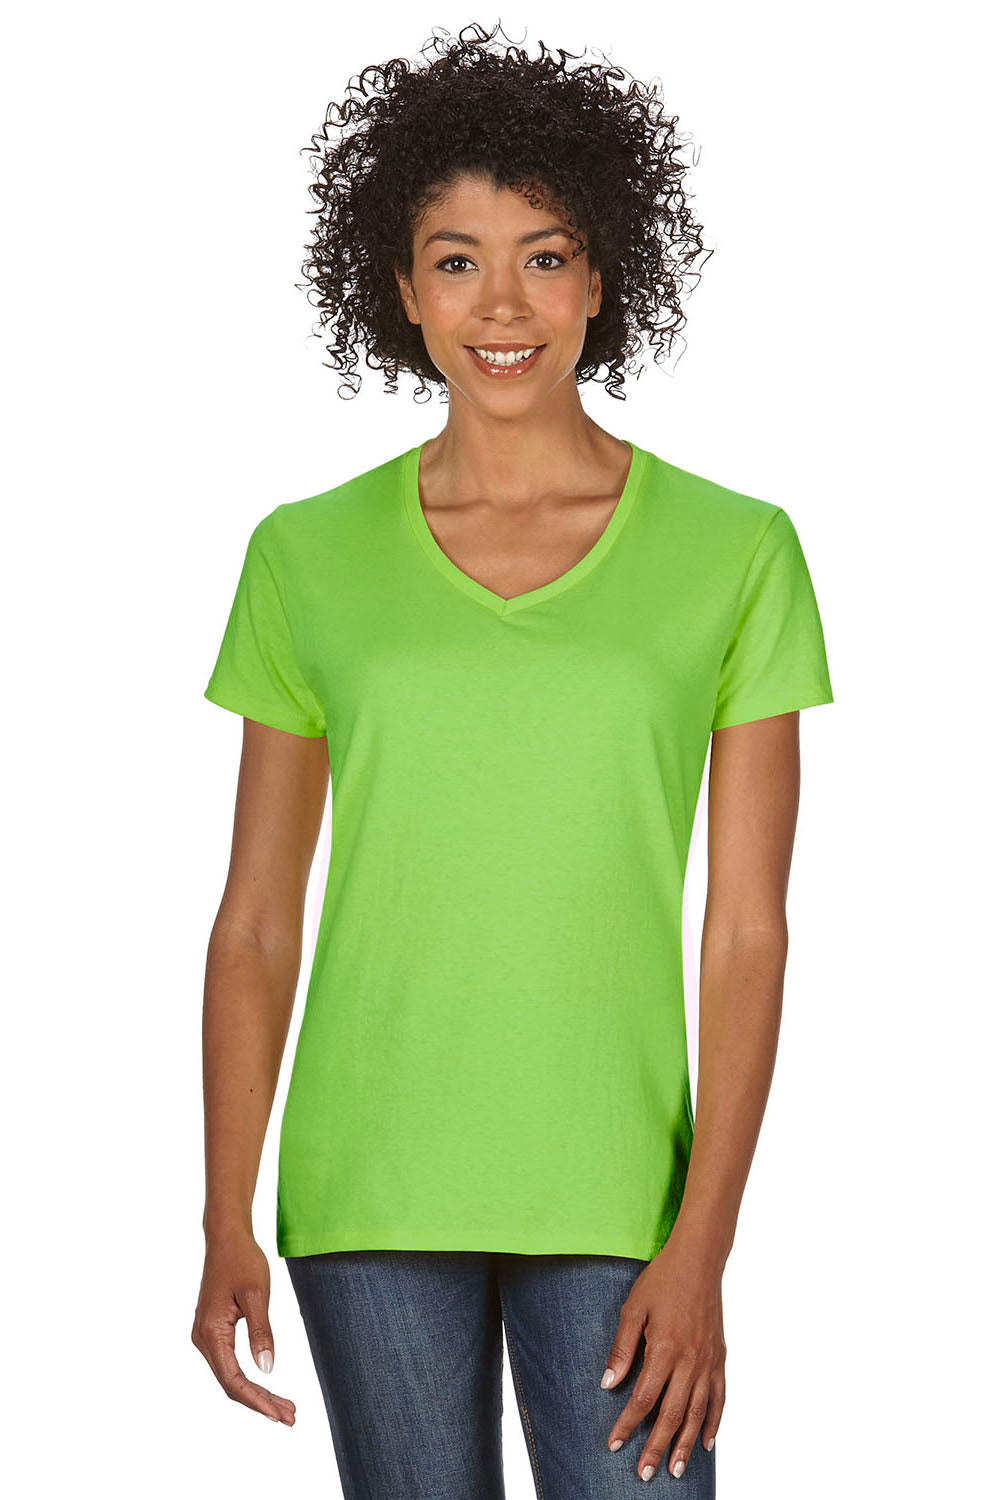 Gildan G500VL Womens Short Sleeve V-Neck T-Shirt Lime Green Front